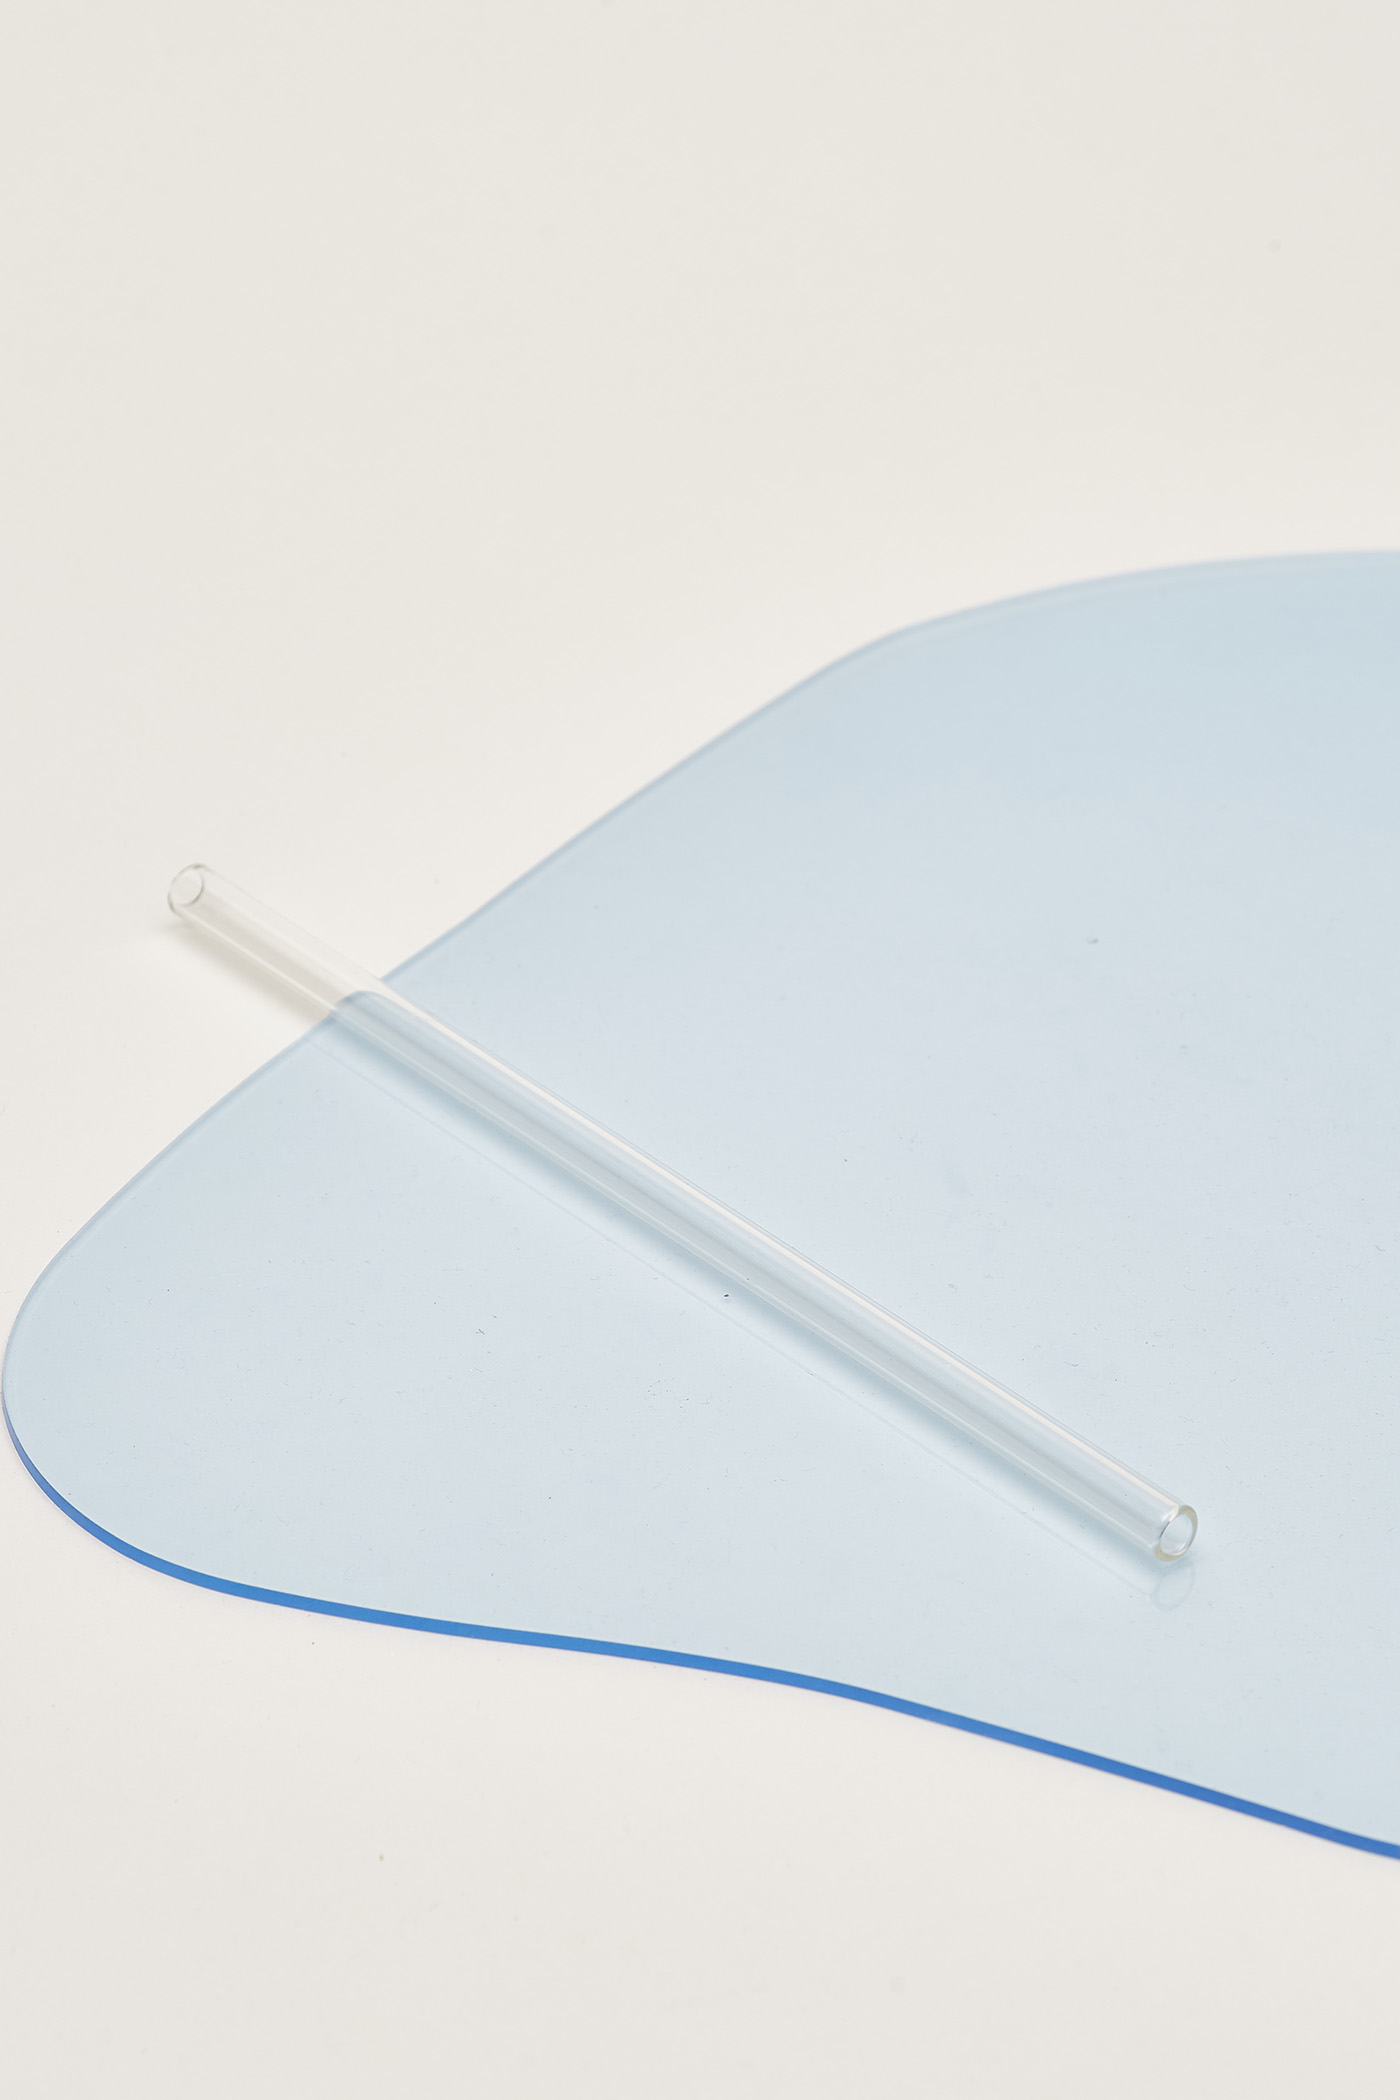 Trendglas Glass Straw 25cm